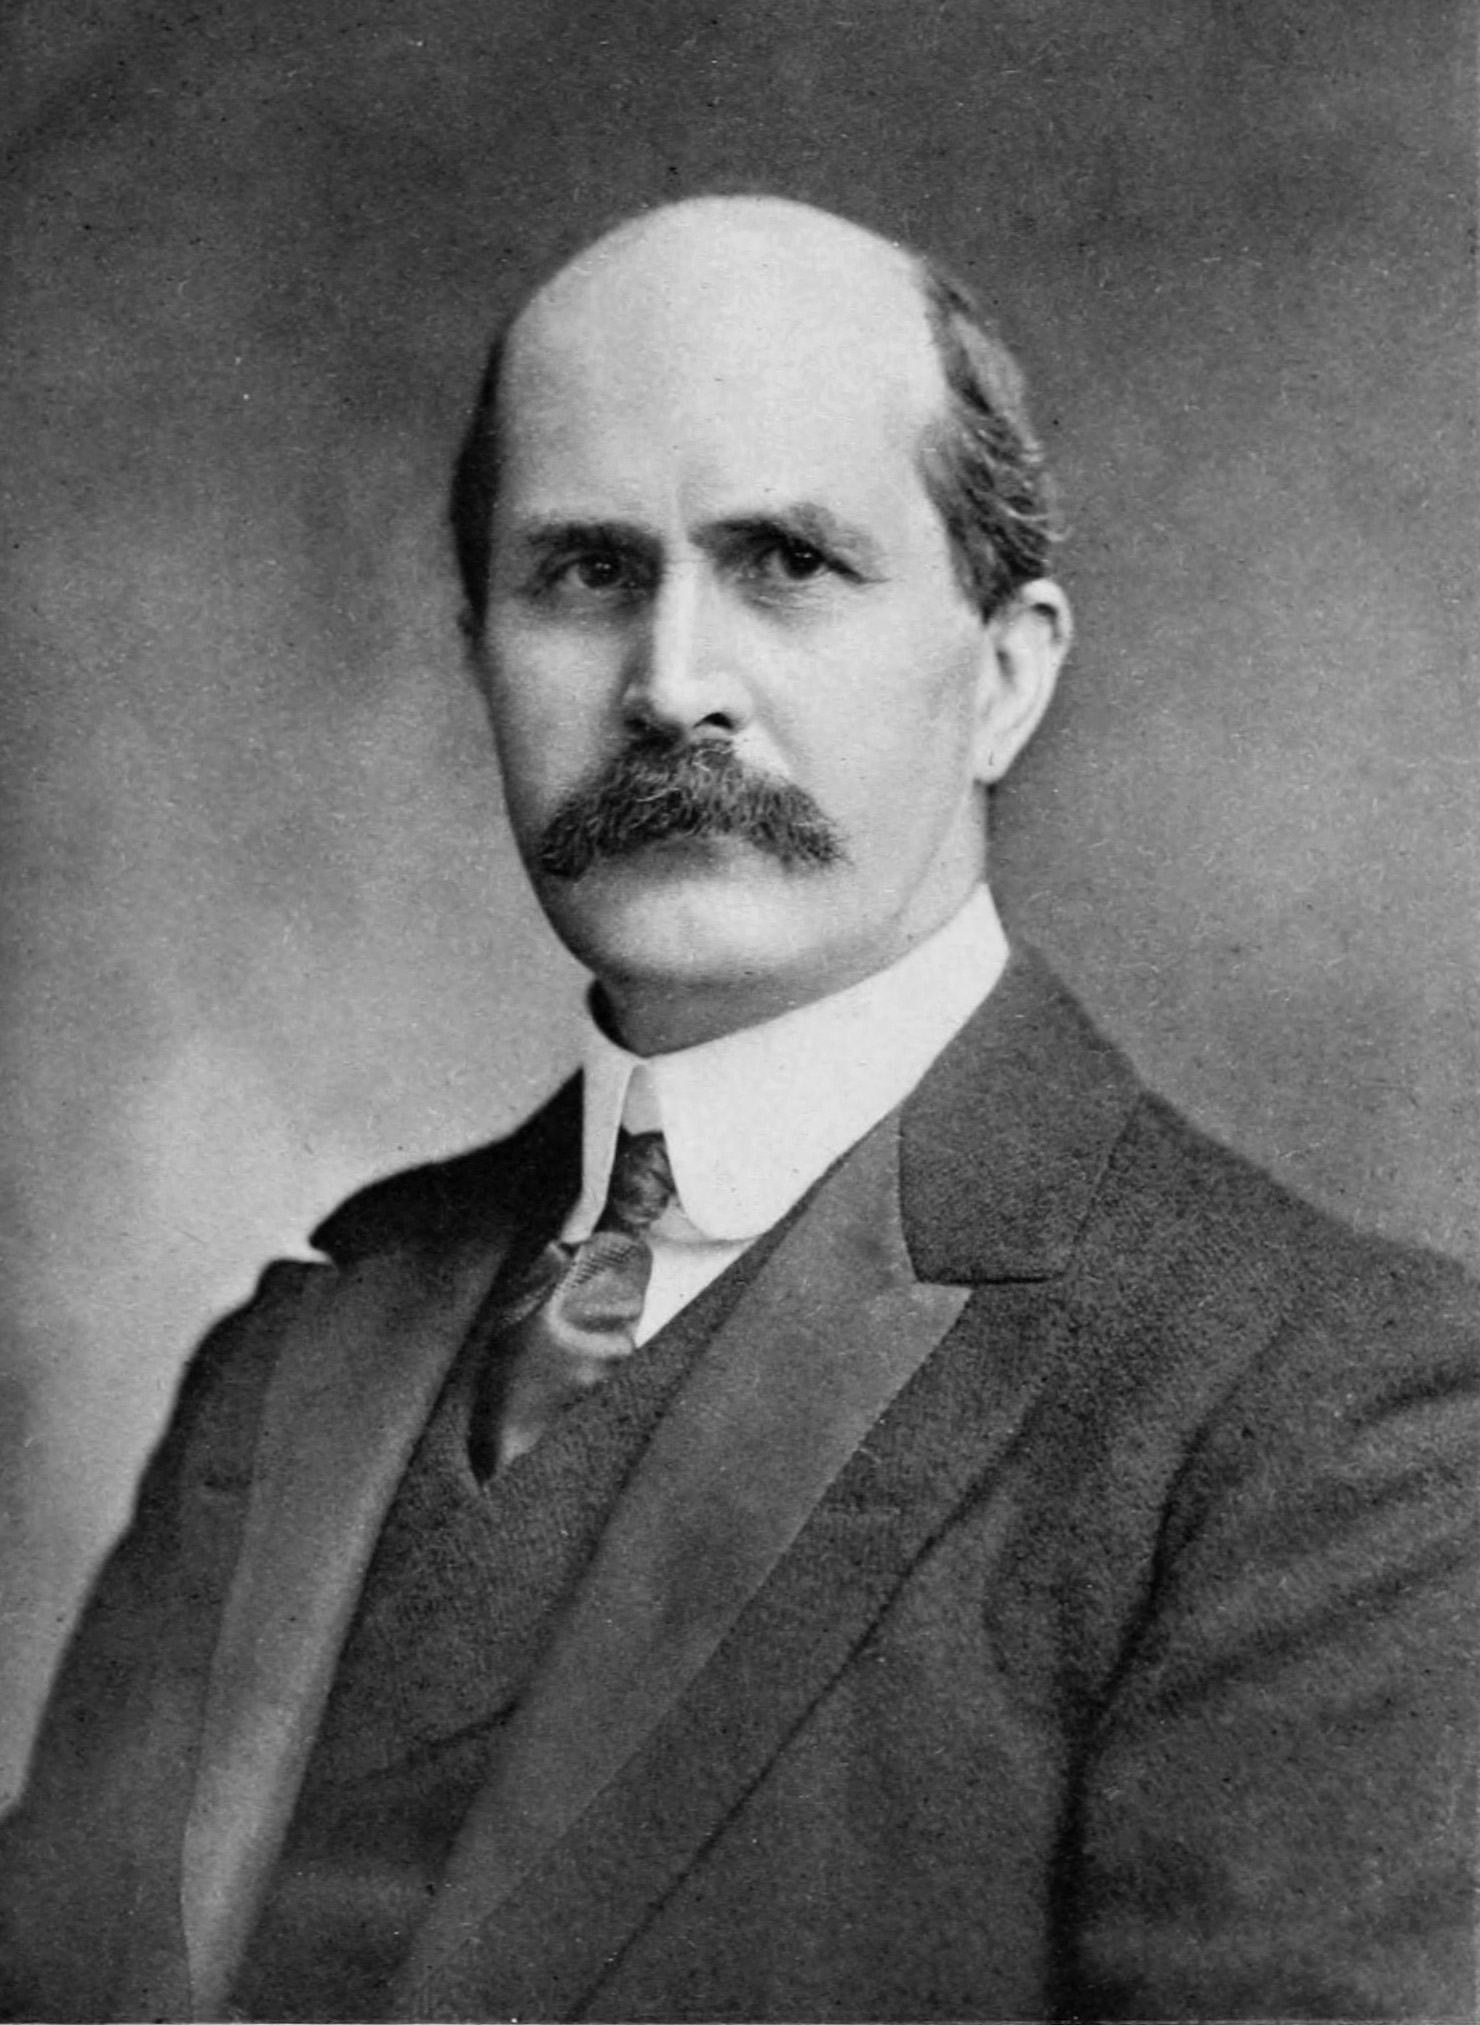 William Henry Bragg 1862-1942. Nobelpreis für Physik 1915